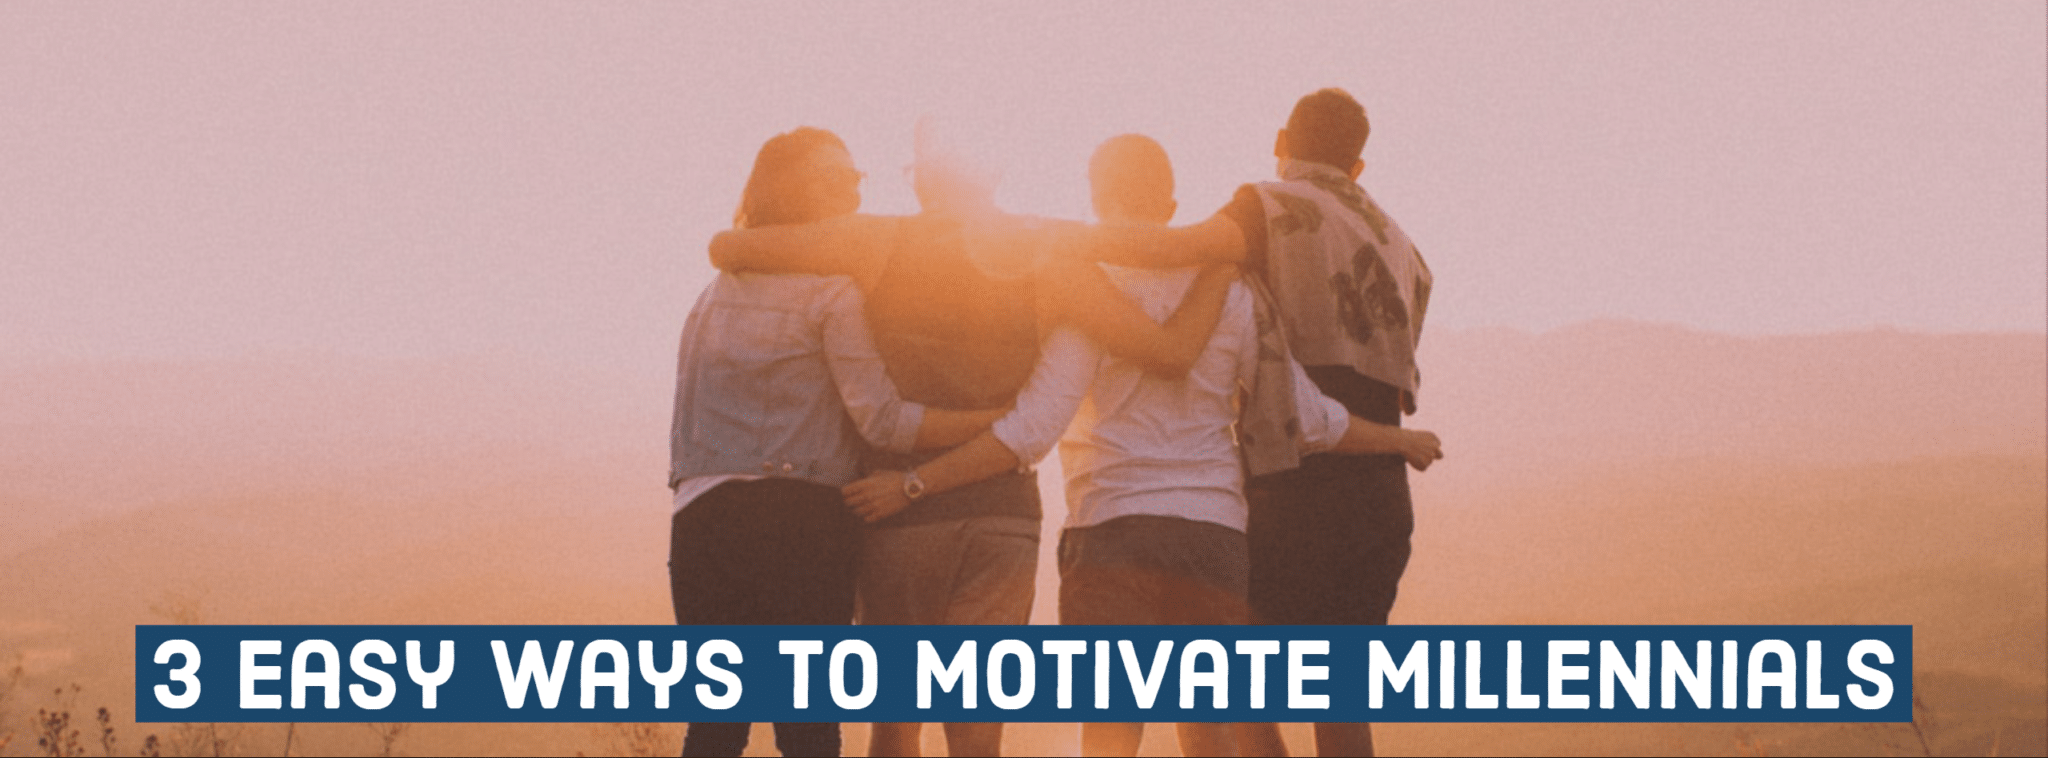 3 Easy ways to motivate millennials